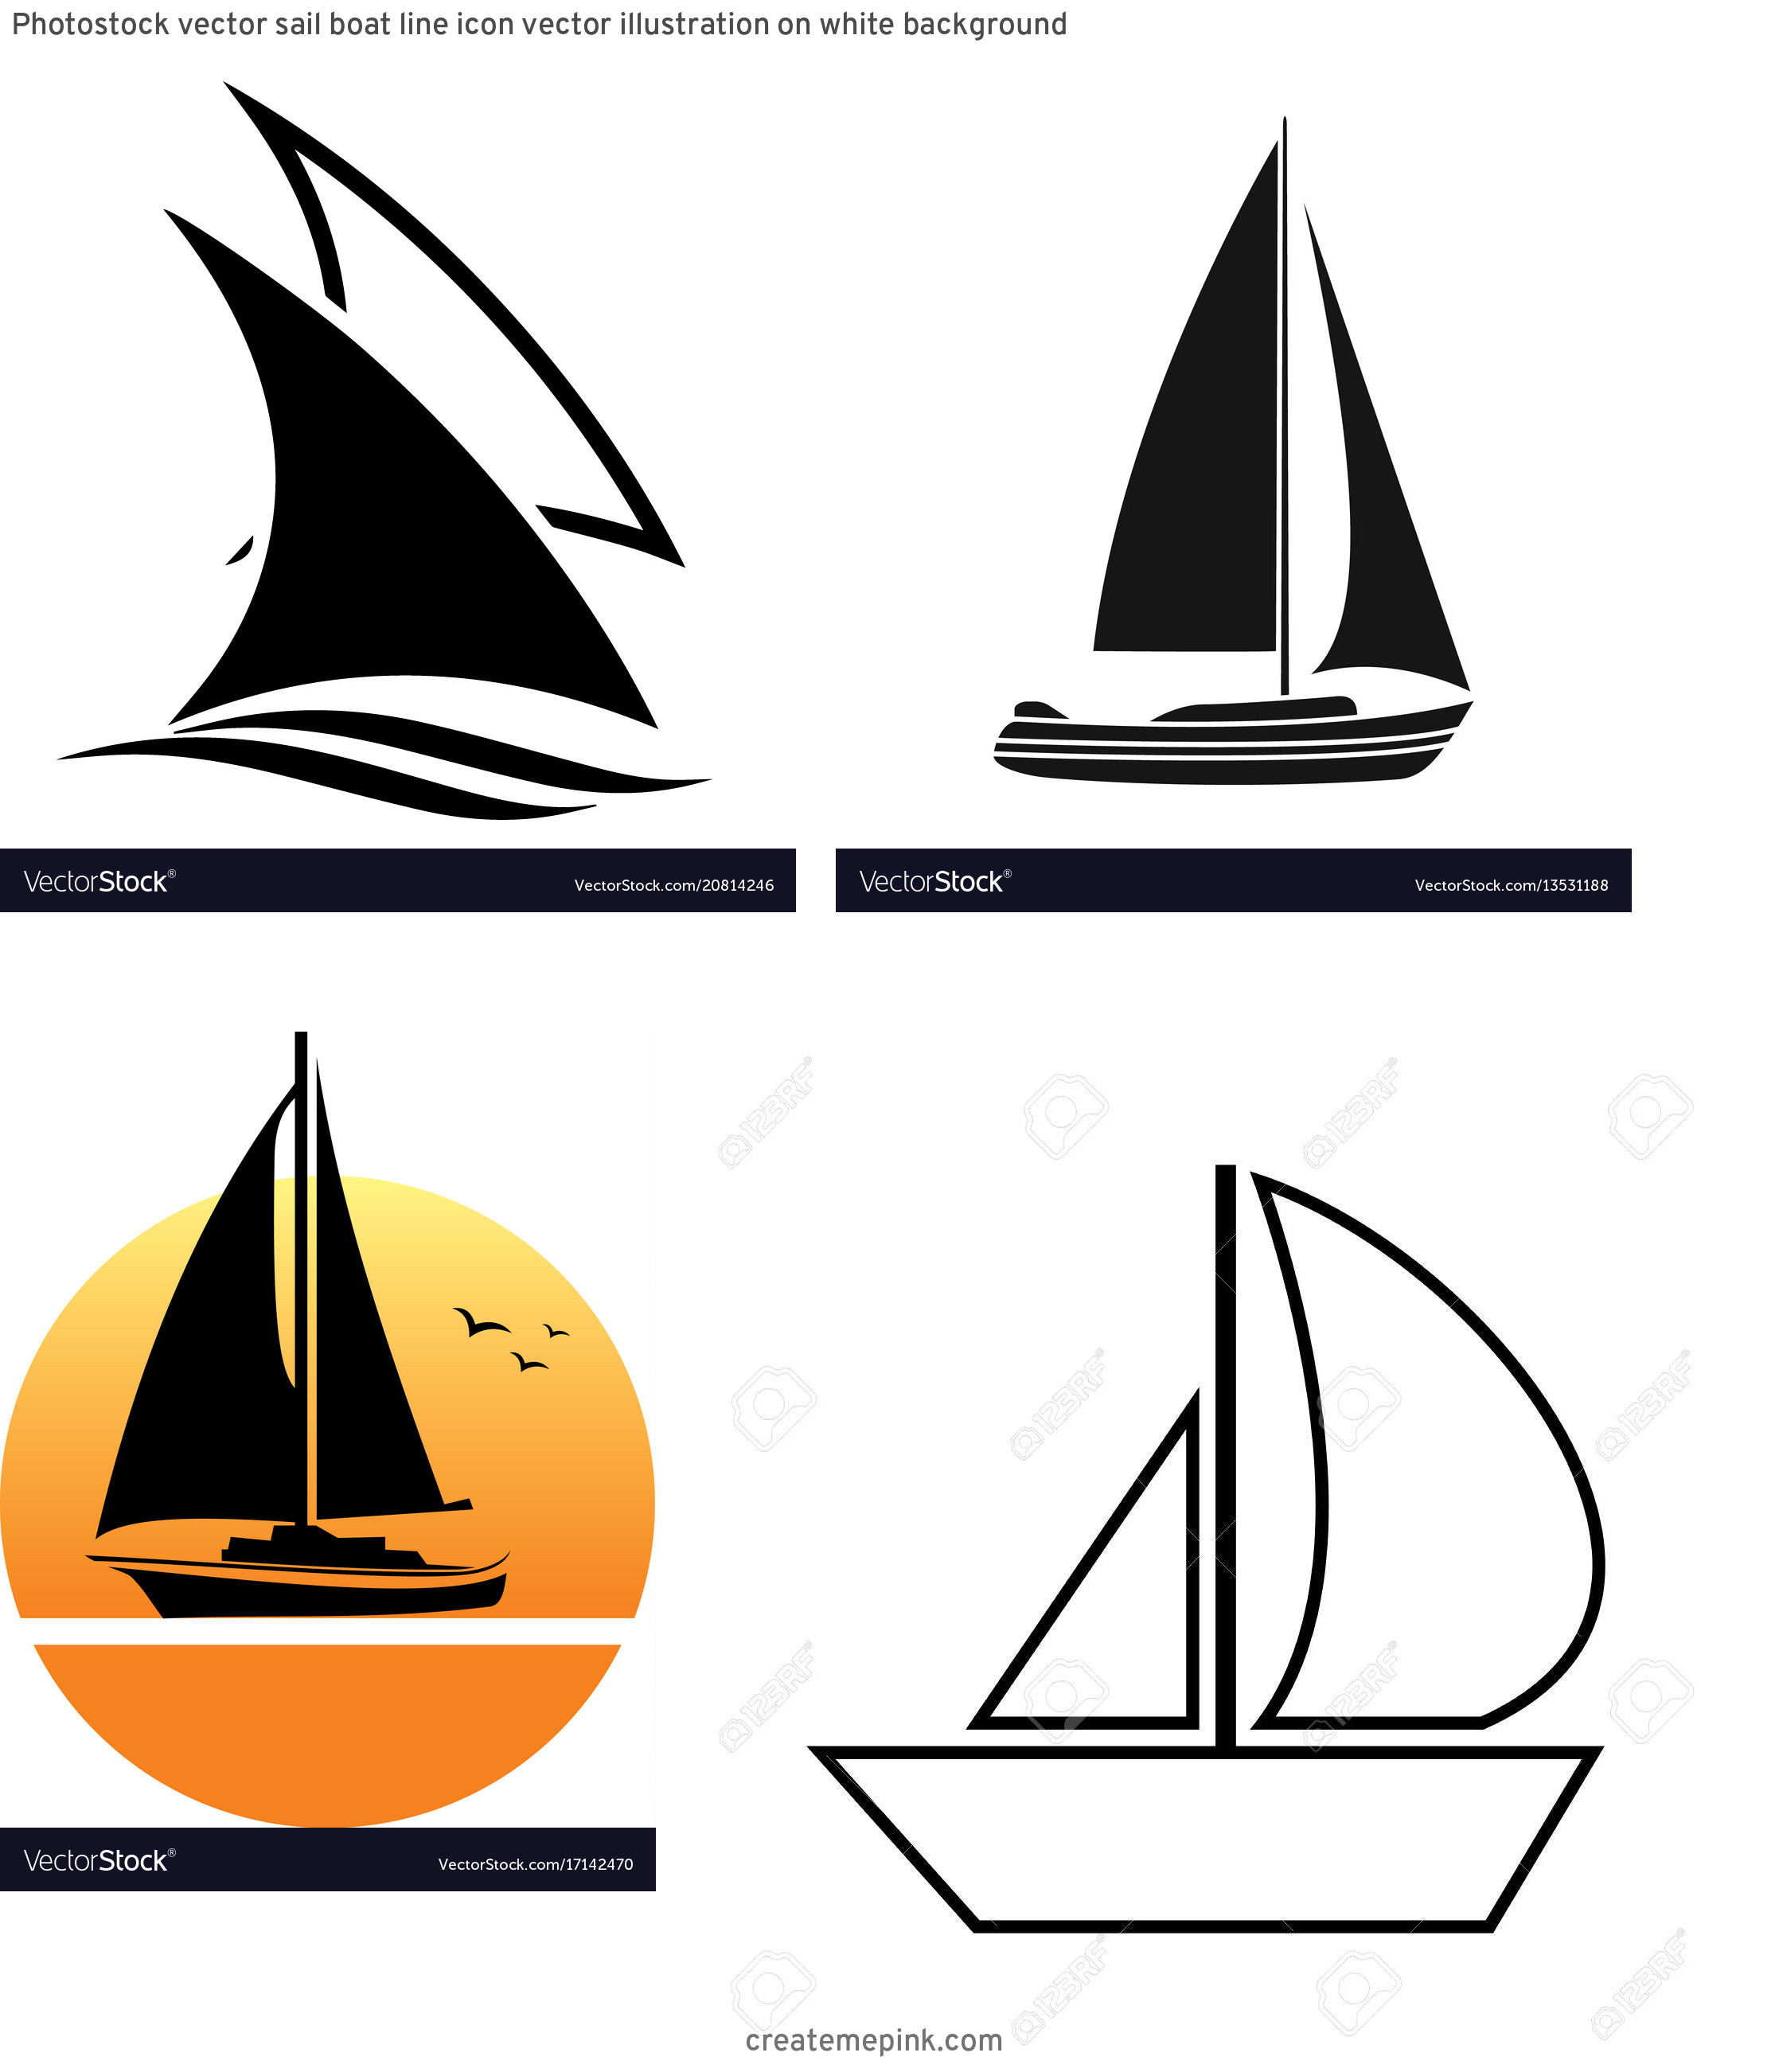 Sail Vector: Photostock Vector Sail Boat Line Icon Vector Illustration On White Background